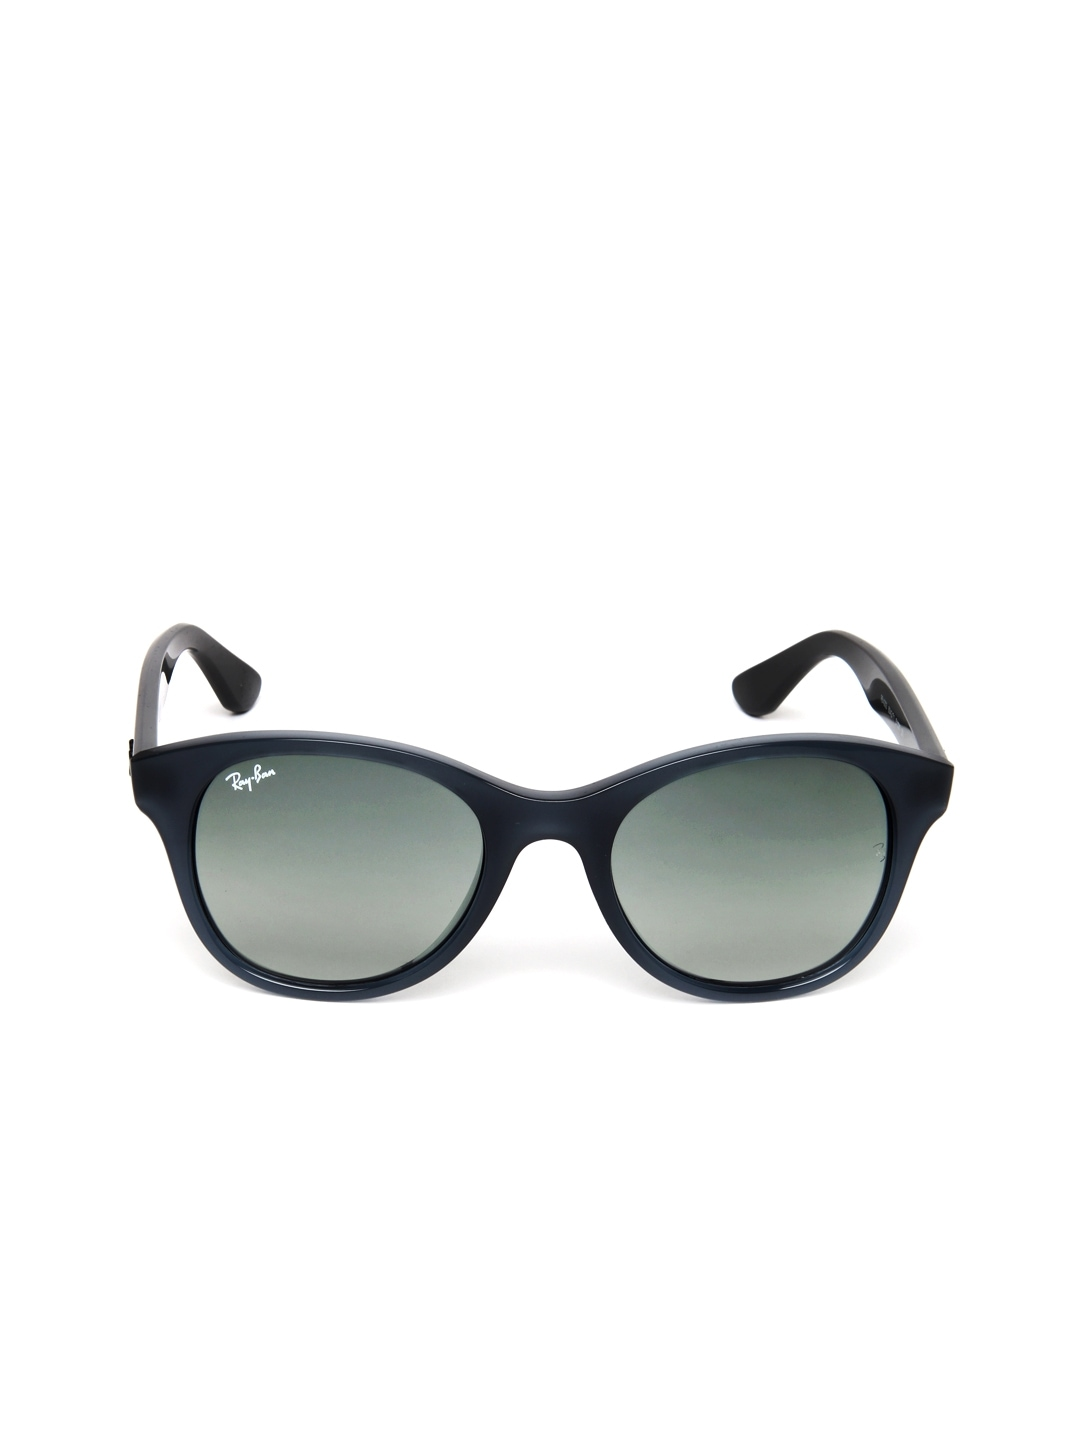 best prices on ray ban sunglasses